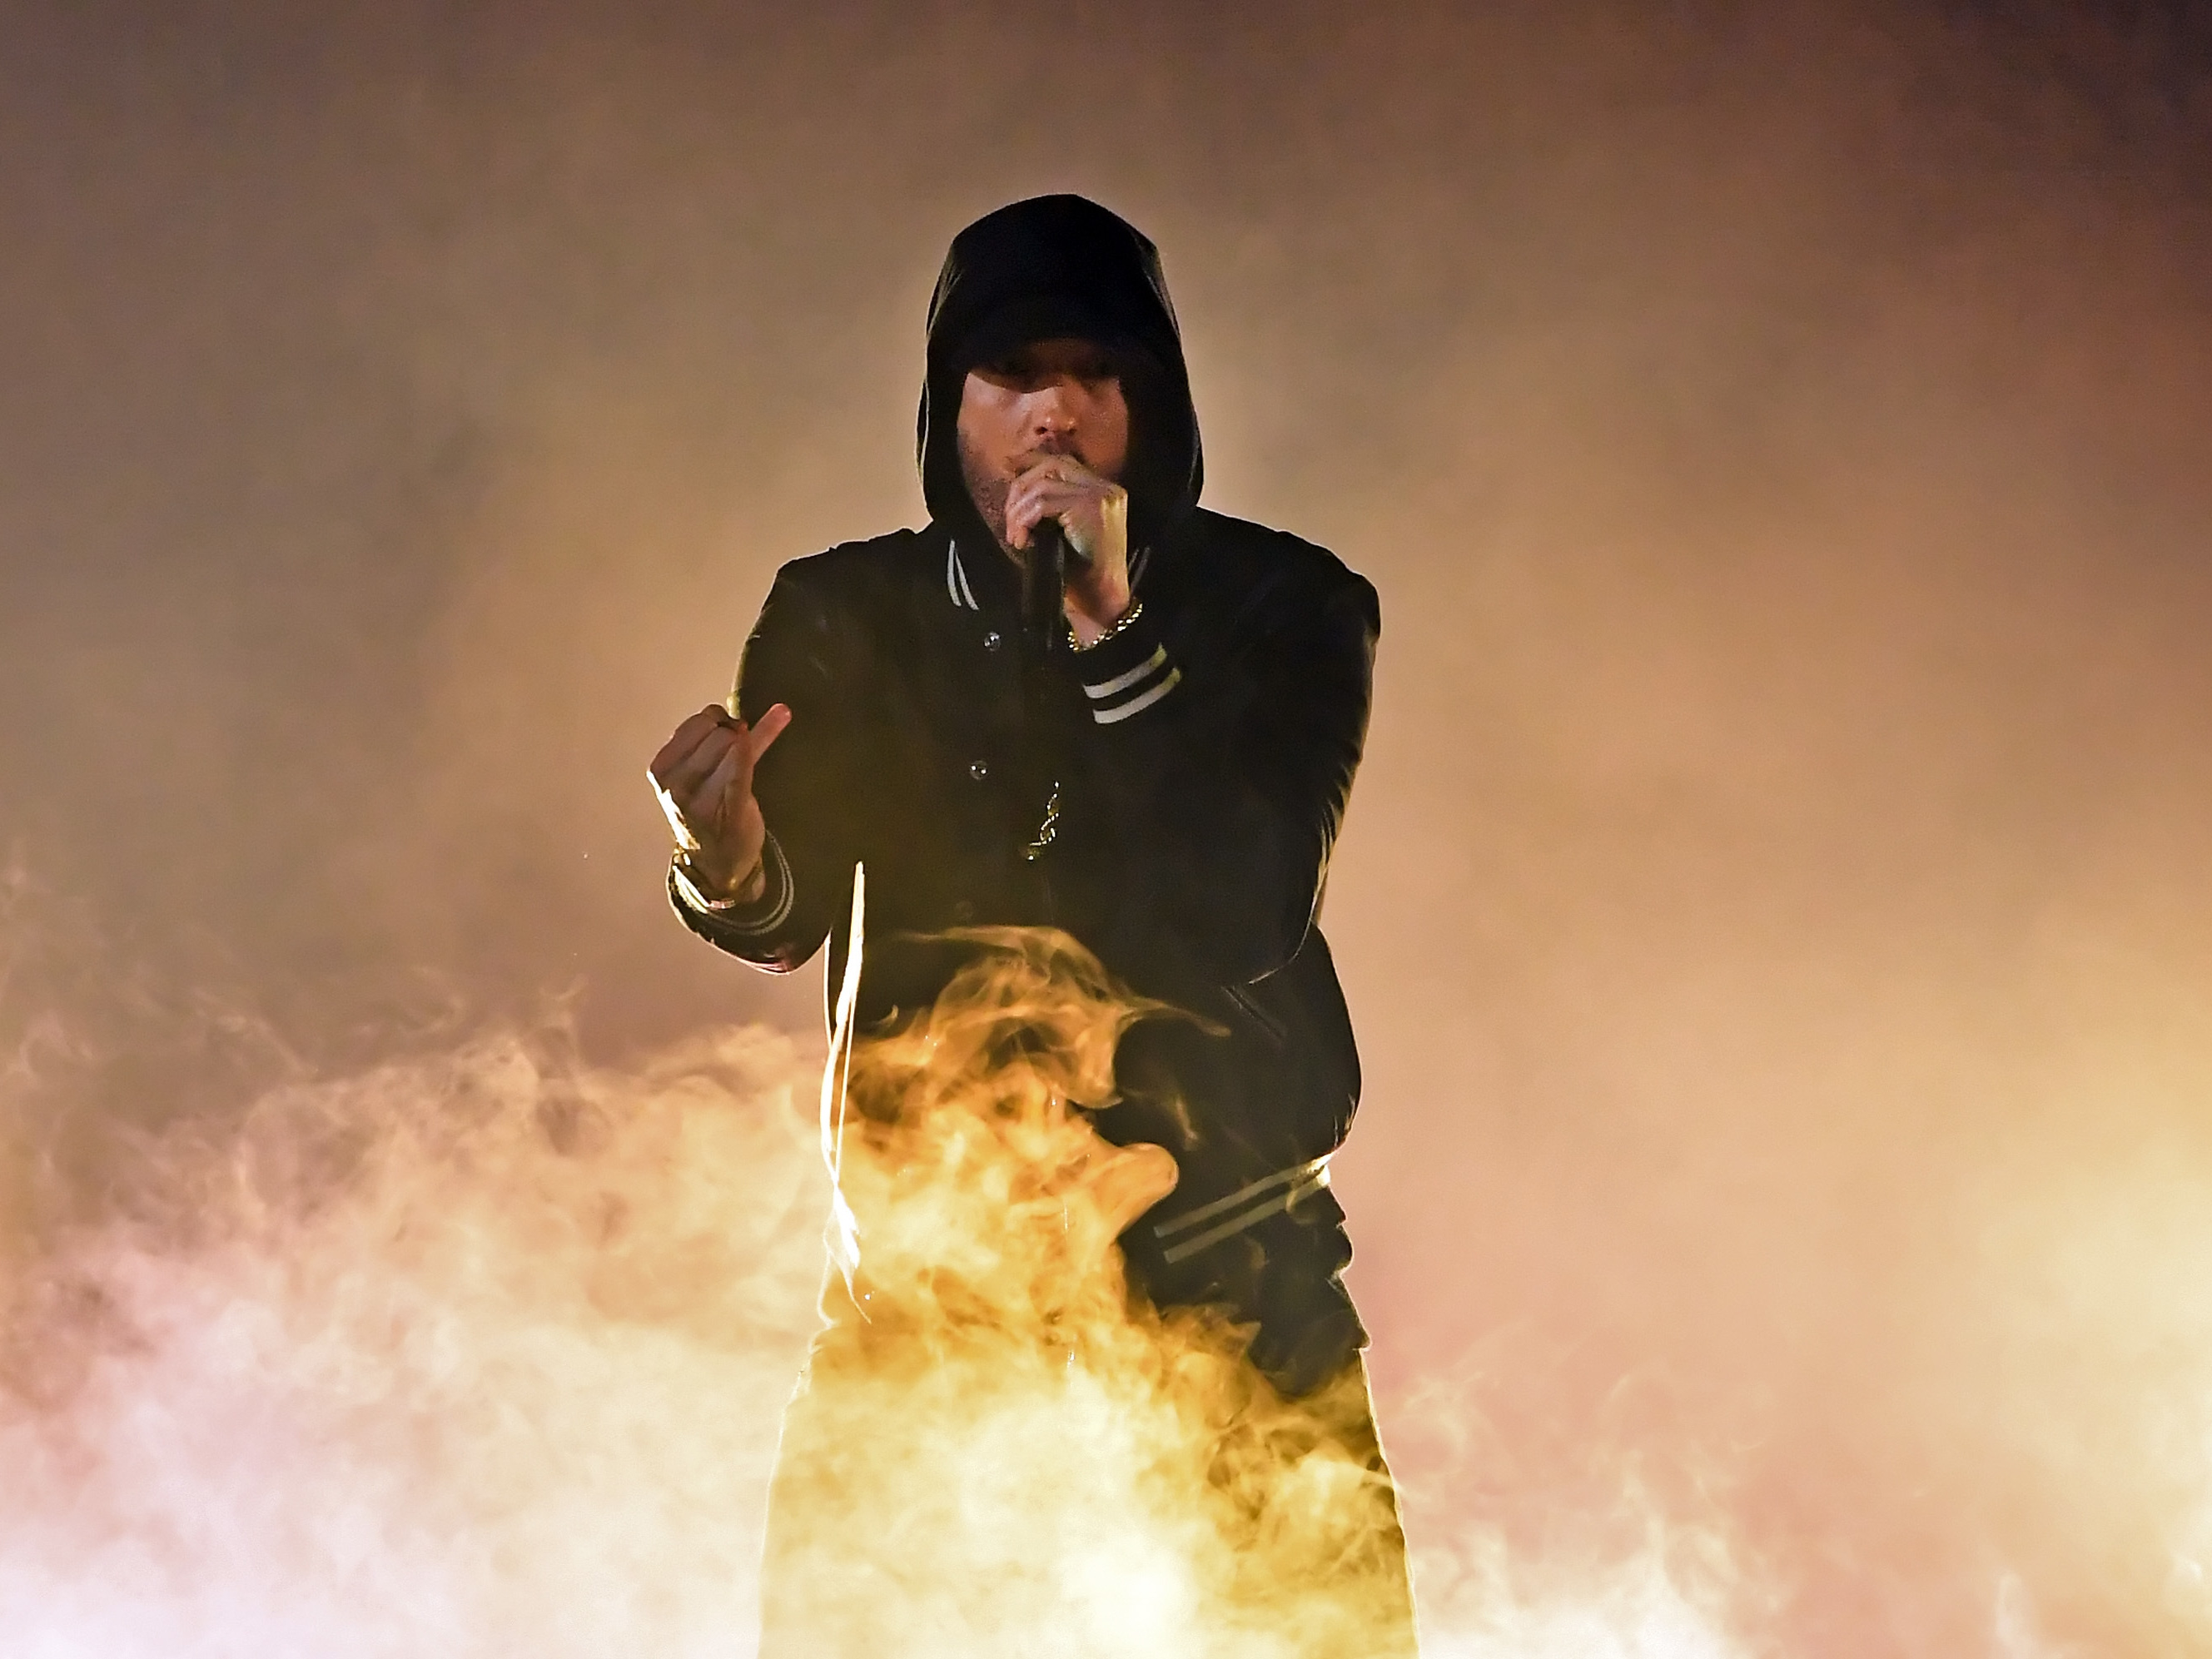 Eminem Became A Parody Of Himself And Everybody's Laughing